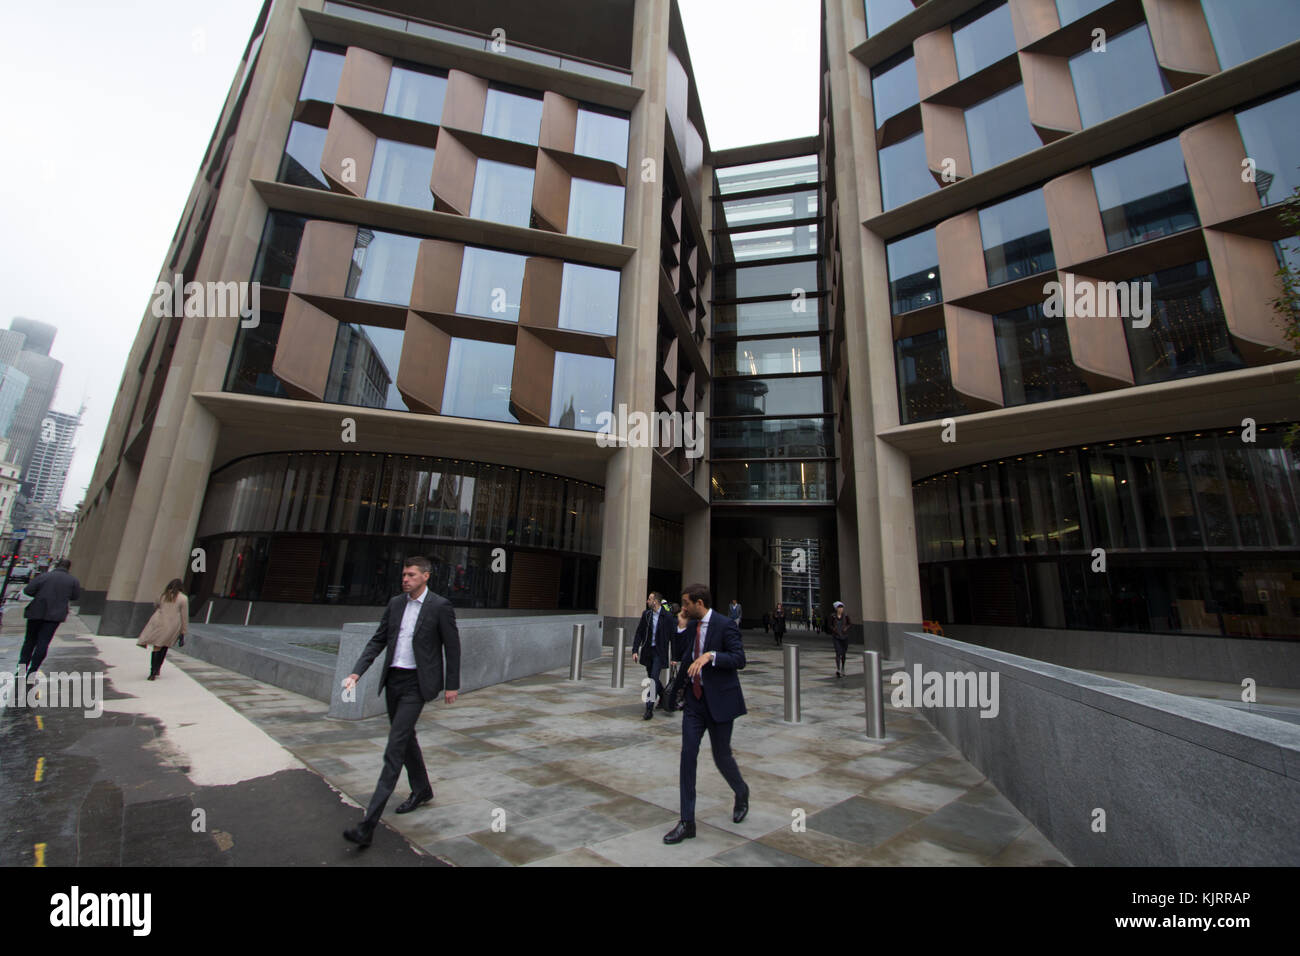 Bloomberg European headquarters in London, opened in 2017 - Stock Image